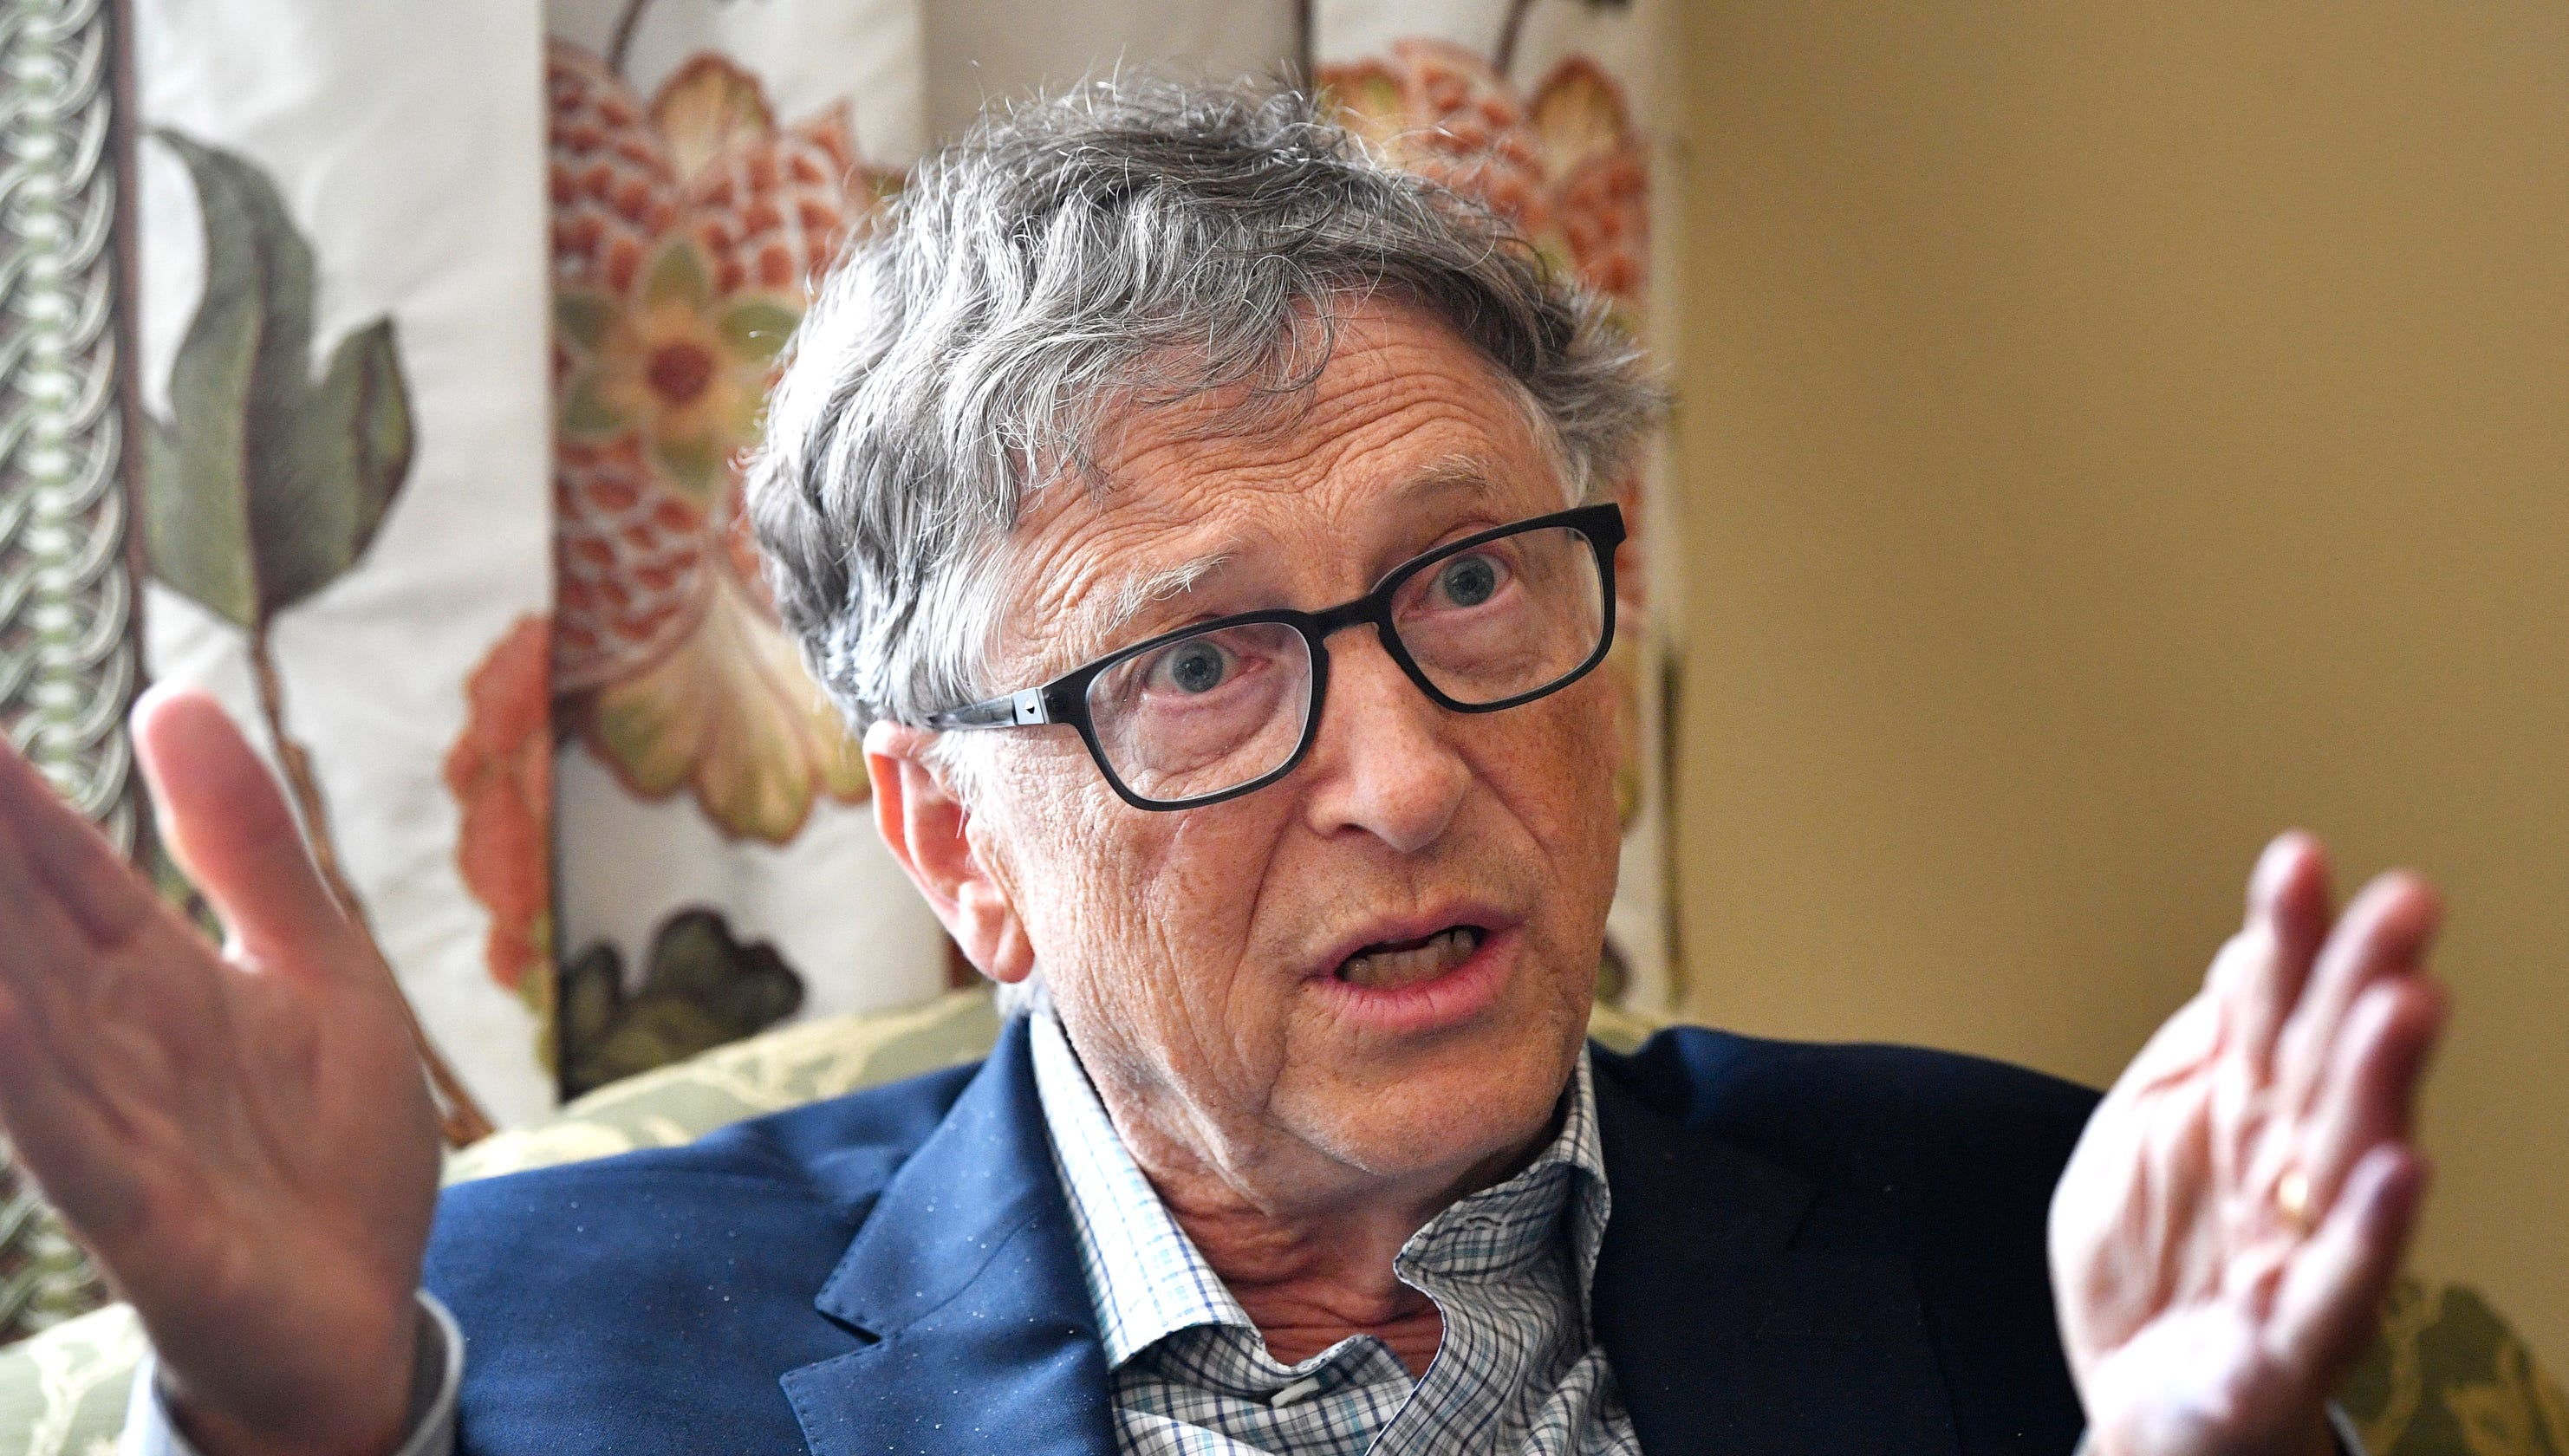 Bill Gates eyes the work ahead for Tennessee in education during visit to Nashville